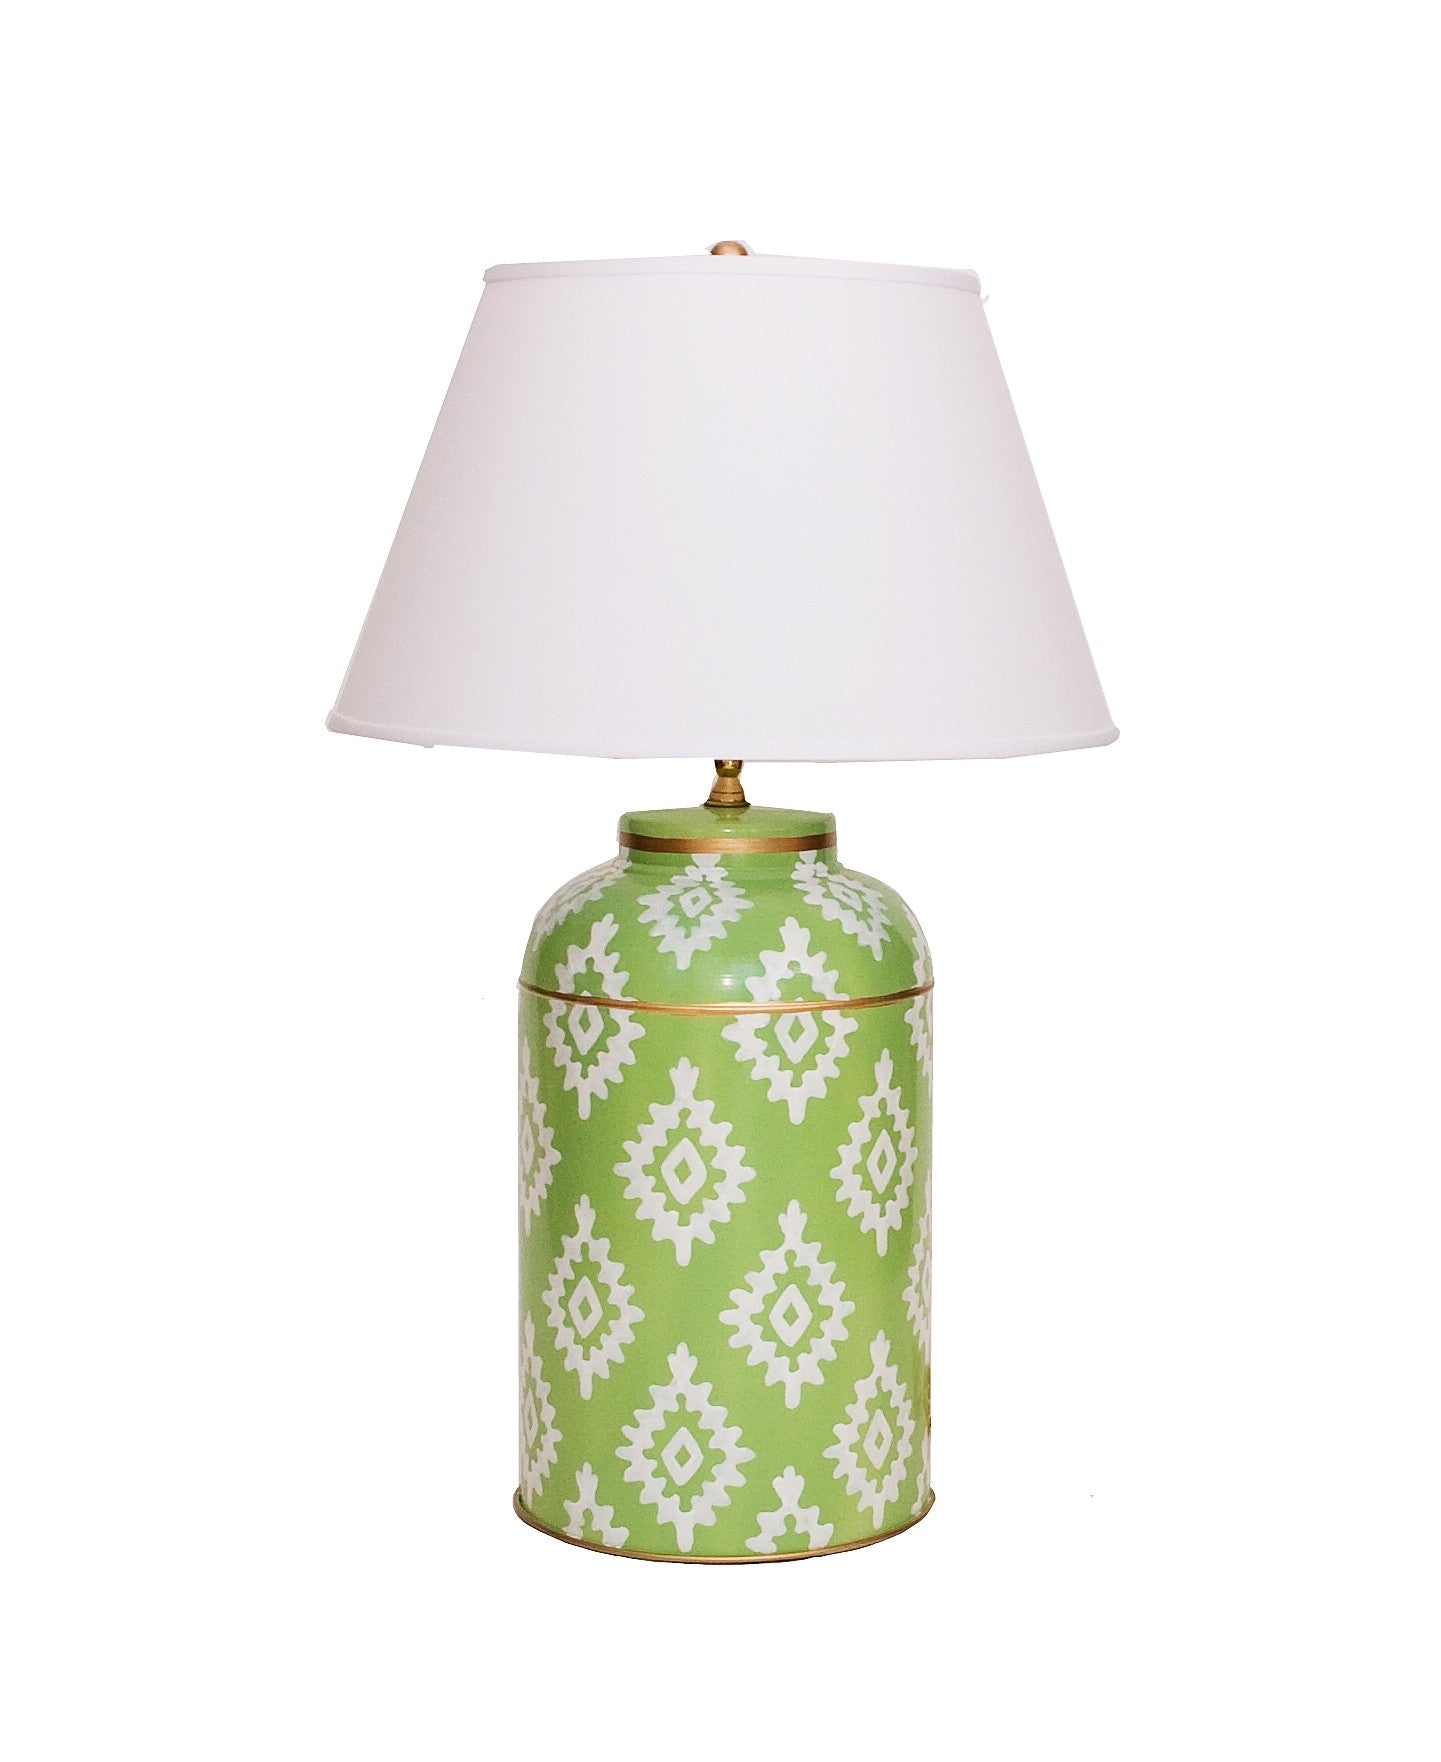 Taupe Block Print Tea caddy Lamp